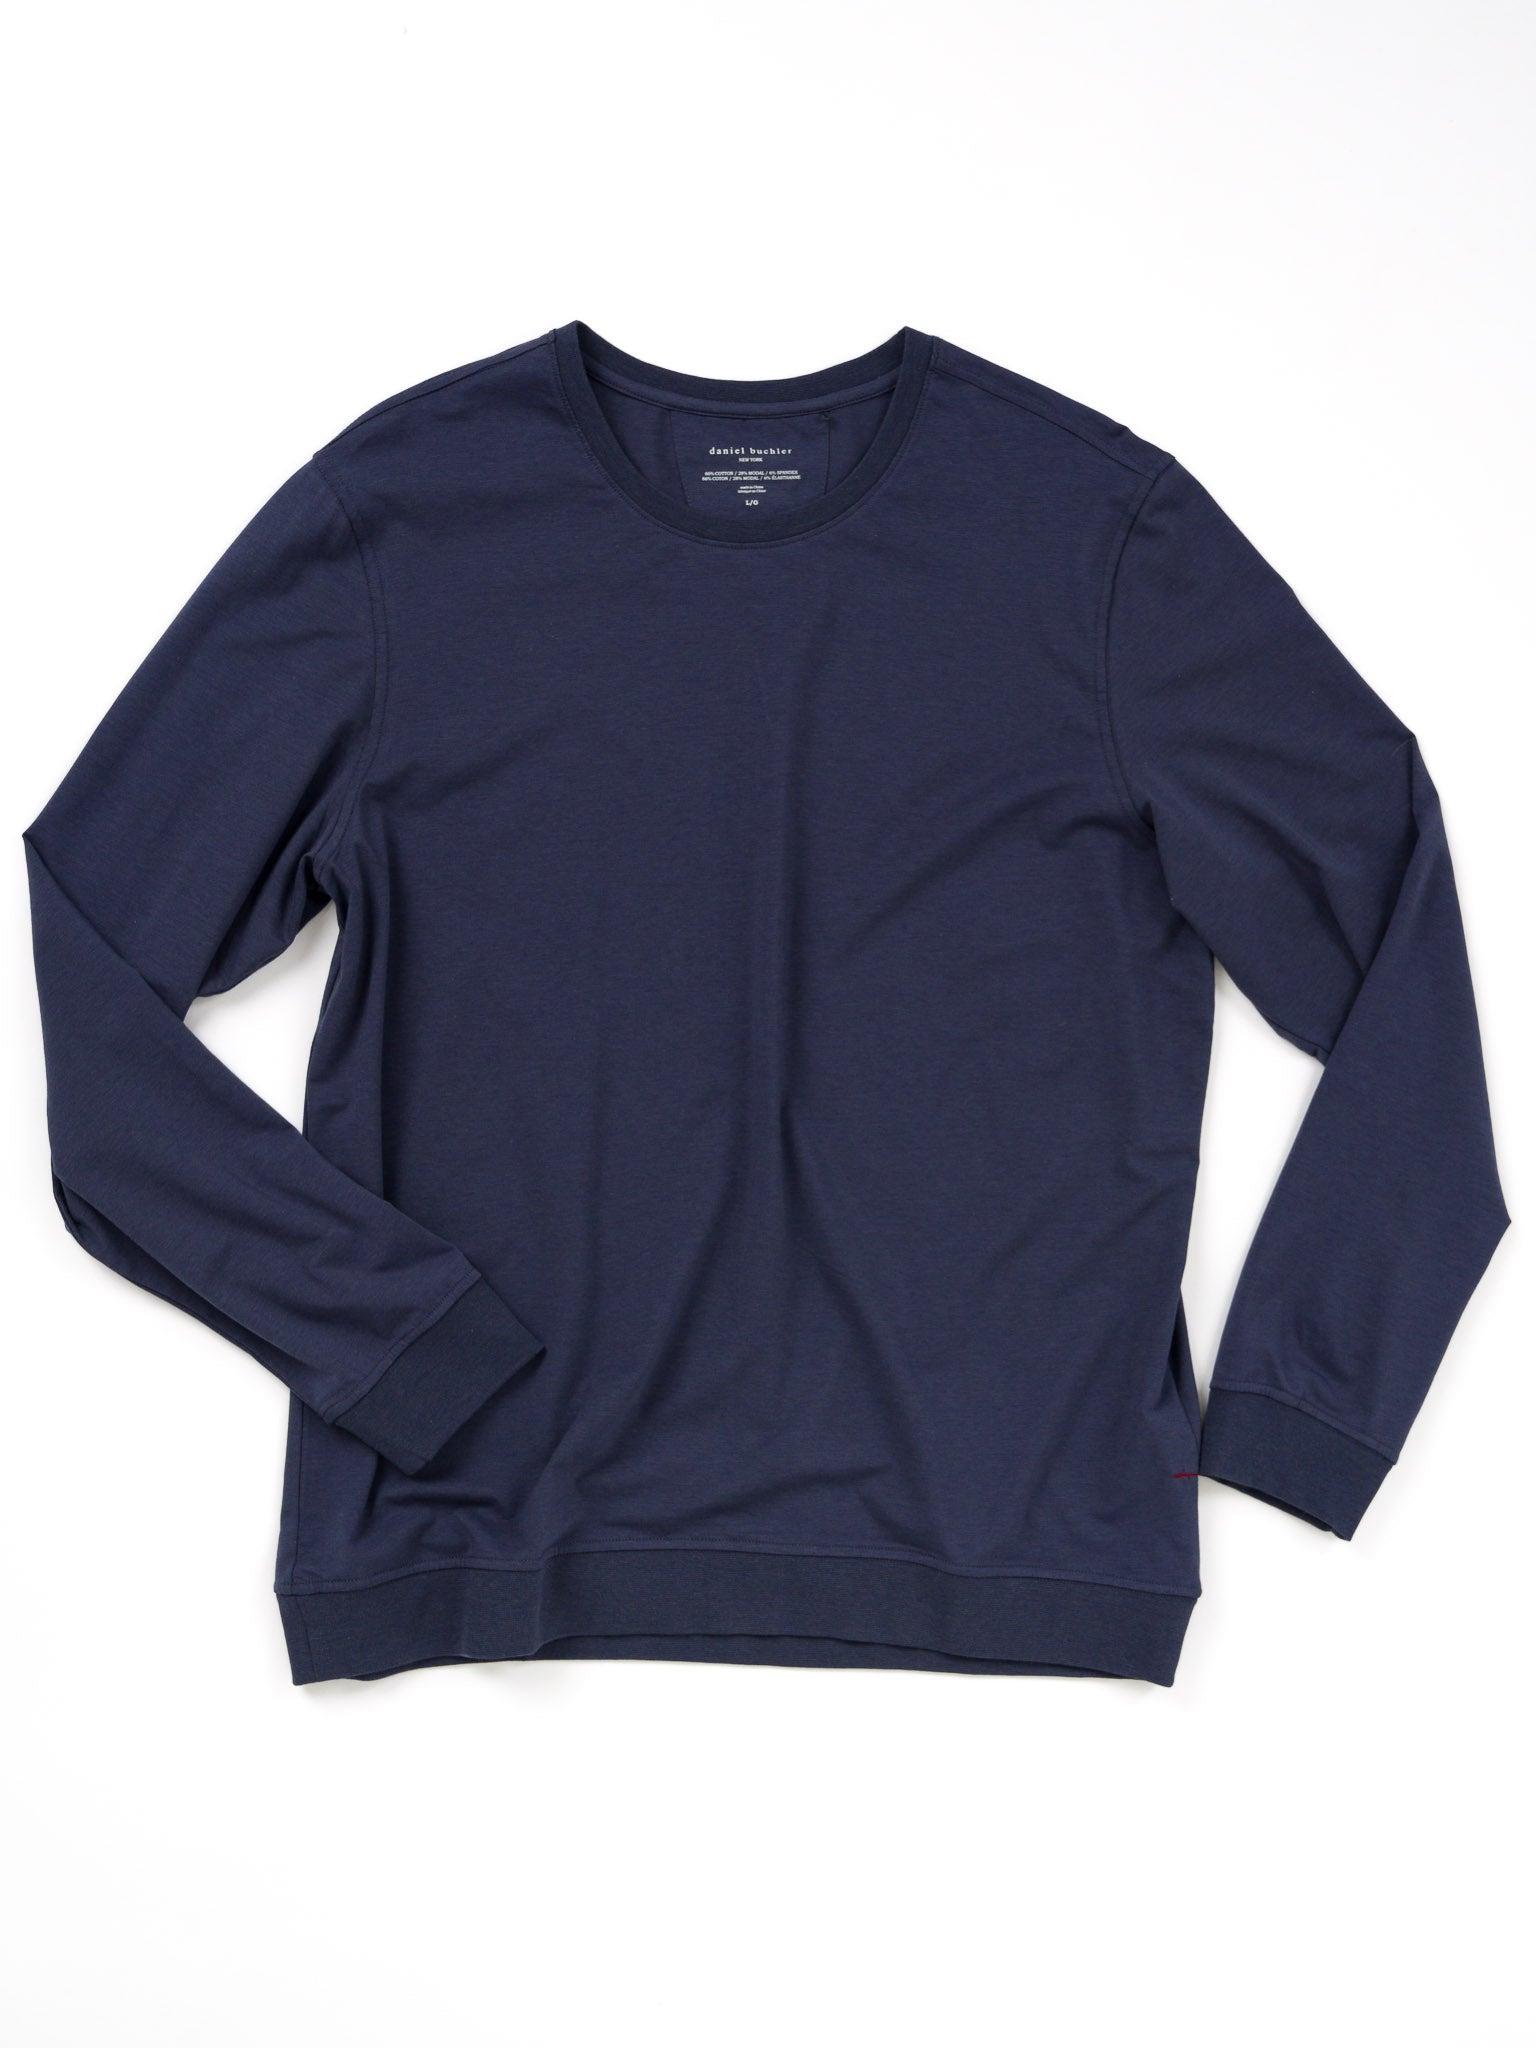 Cotton/Modal Long Sleeve